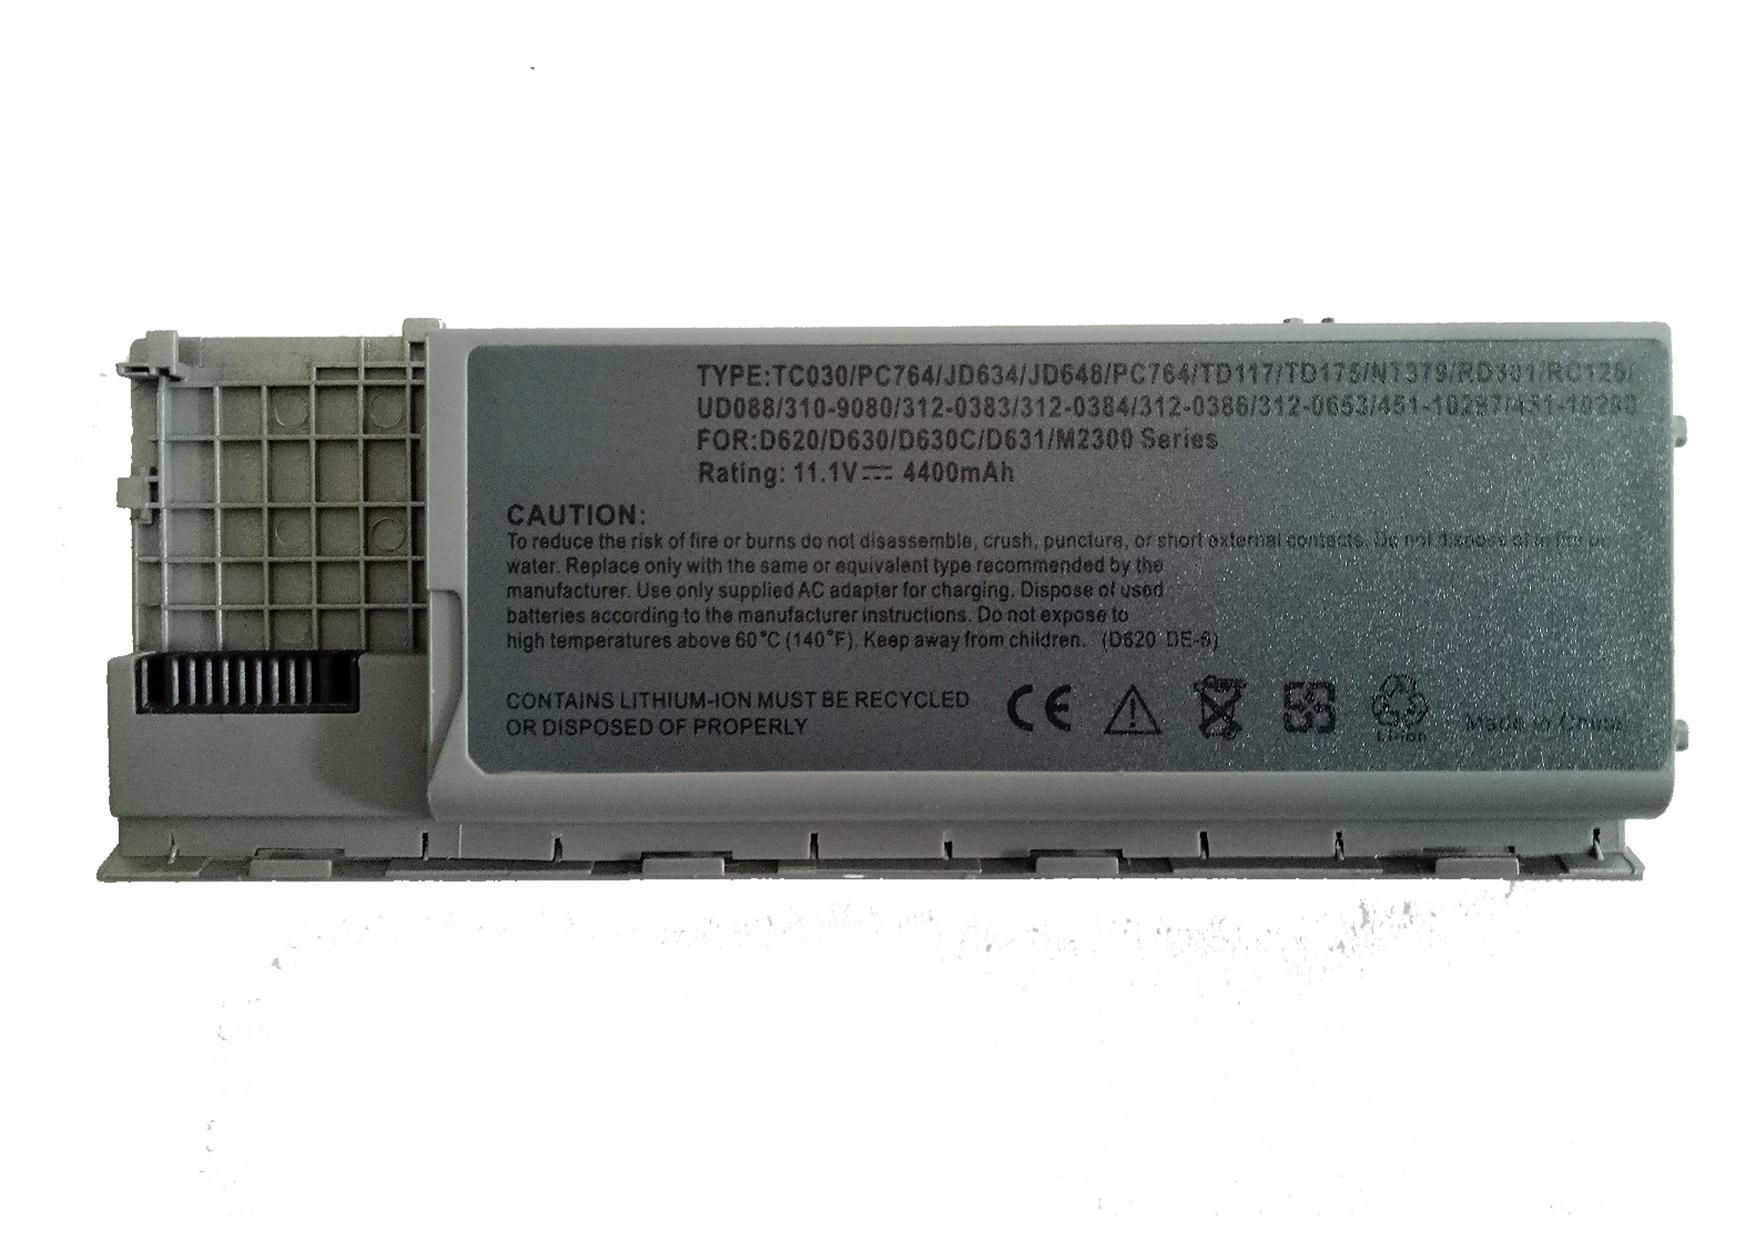 Dell Latitude D620 D630 D631 M2300 PC764 TC030 Laptop Battery